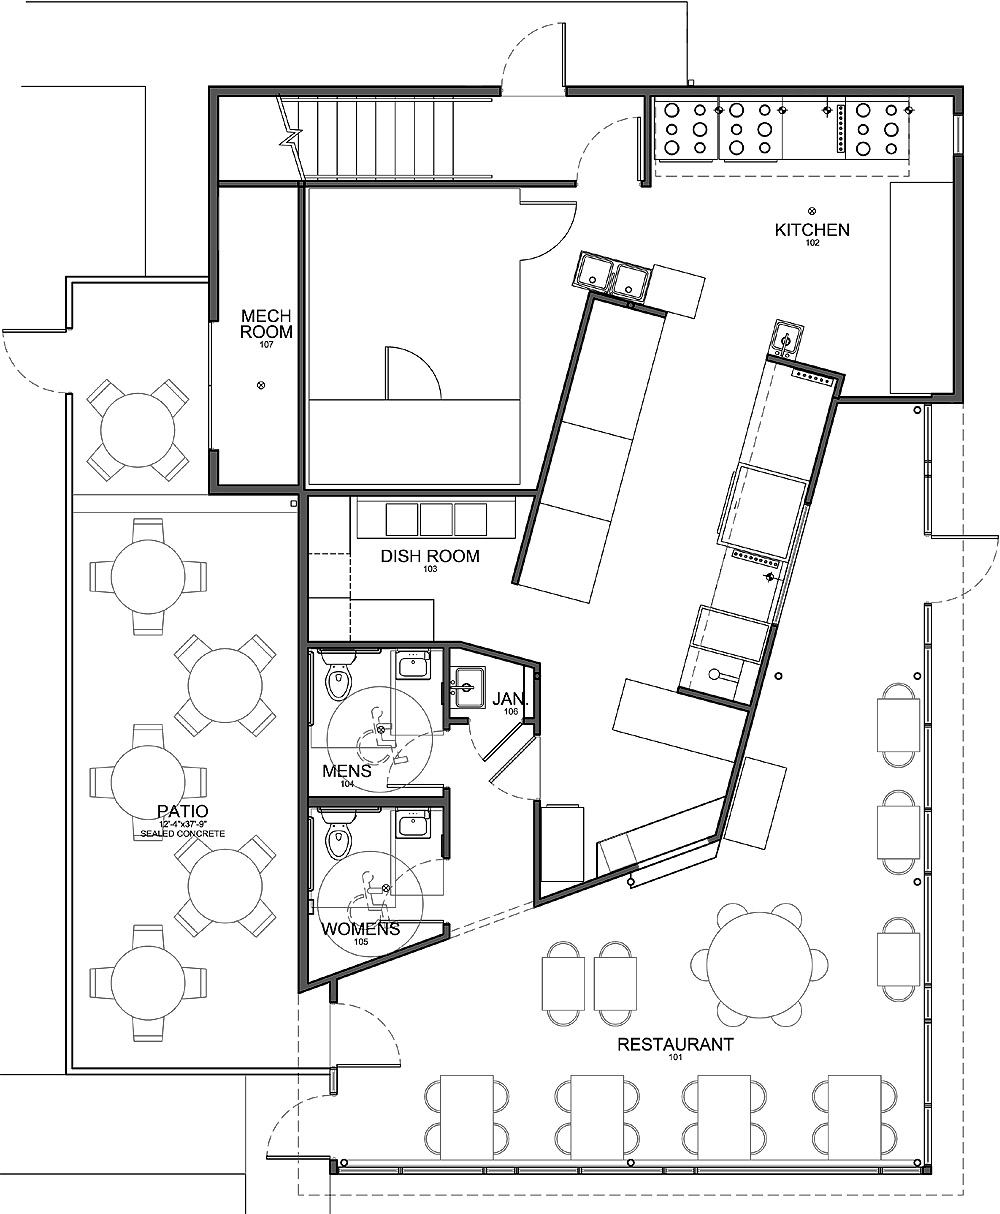 Commercial kitchen floor plans find house plans for Buy floor plan